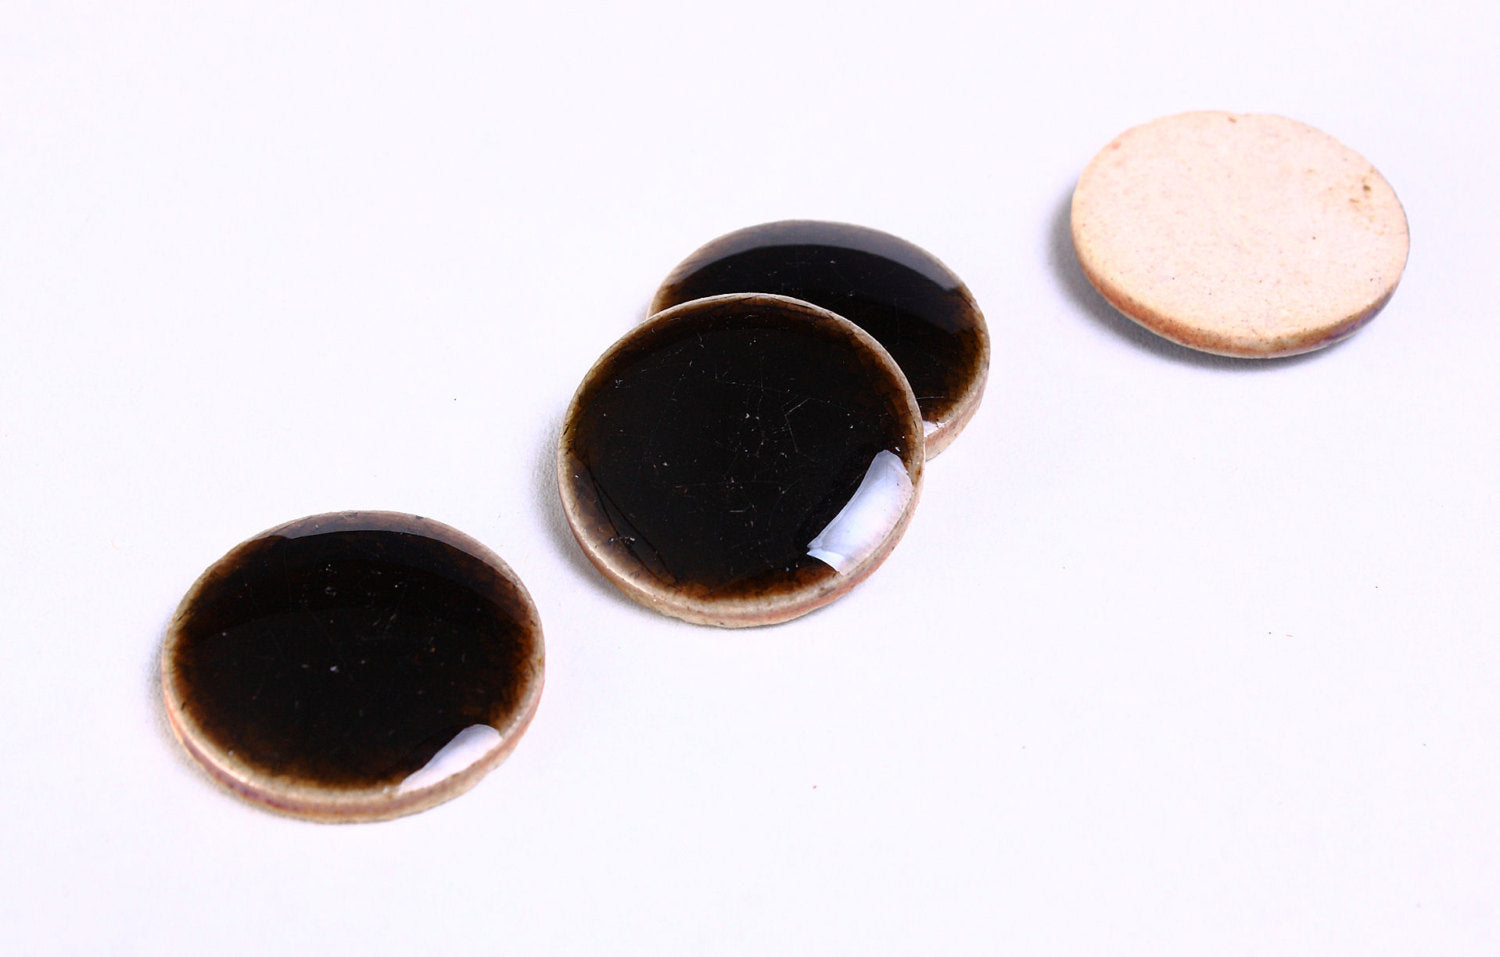 20mm Dark coffee black brown porcelain cabochons - 20mm handmade crackle porcelain - 20mm round cabochon - 4 pieces (927)